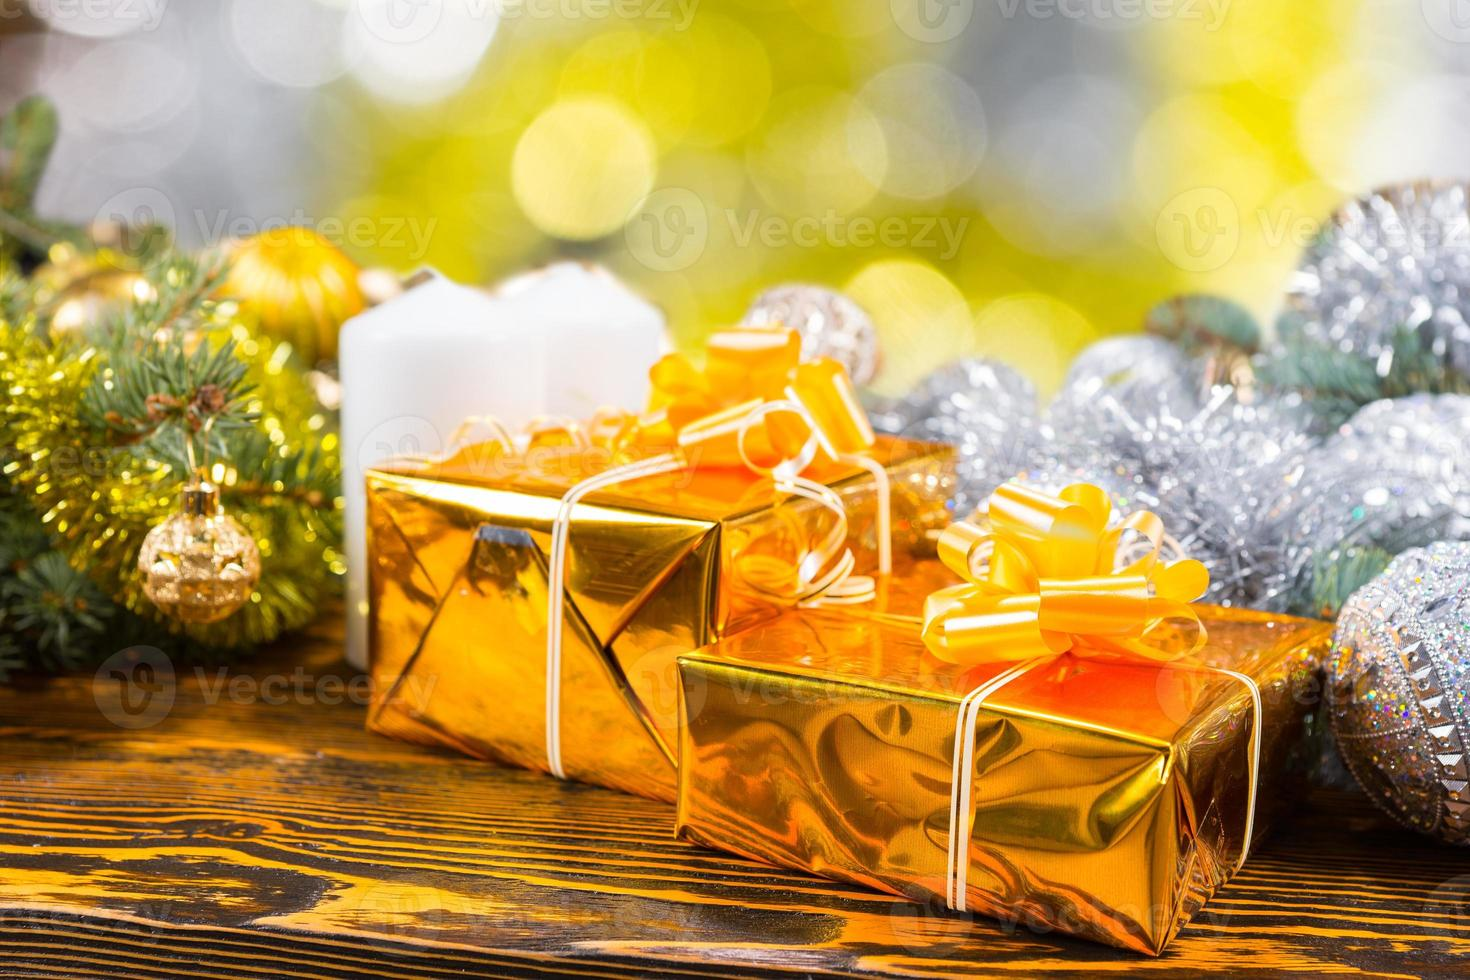 Festive Golden Gifts on Table with Decorations photo